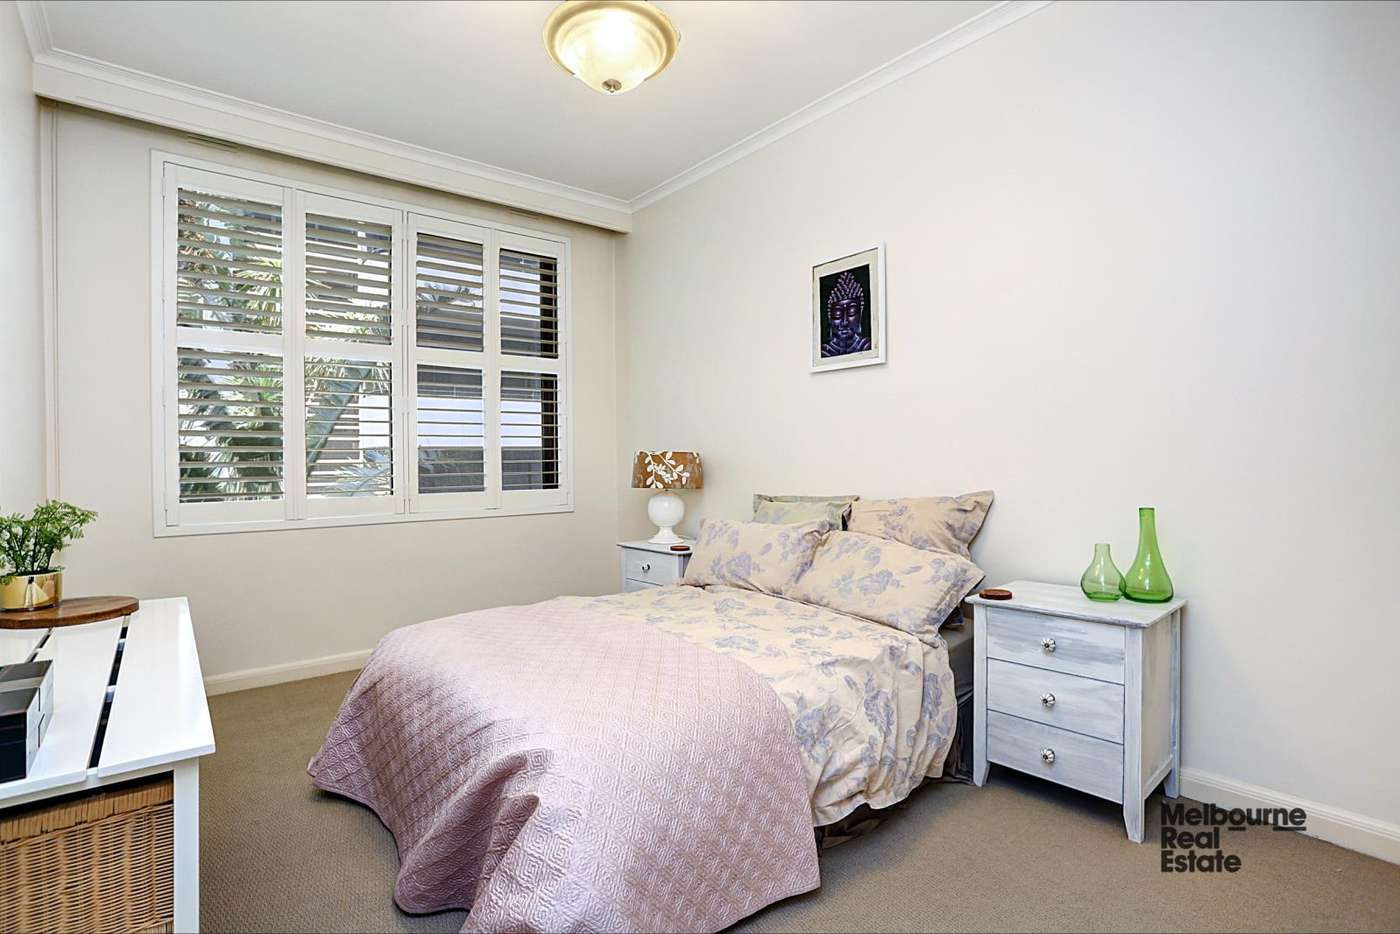 Fifth view of Homely apartment listing, 10/73 Queens Road, Melbourne VIC 3004